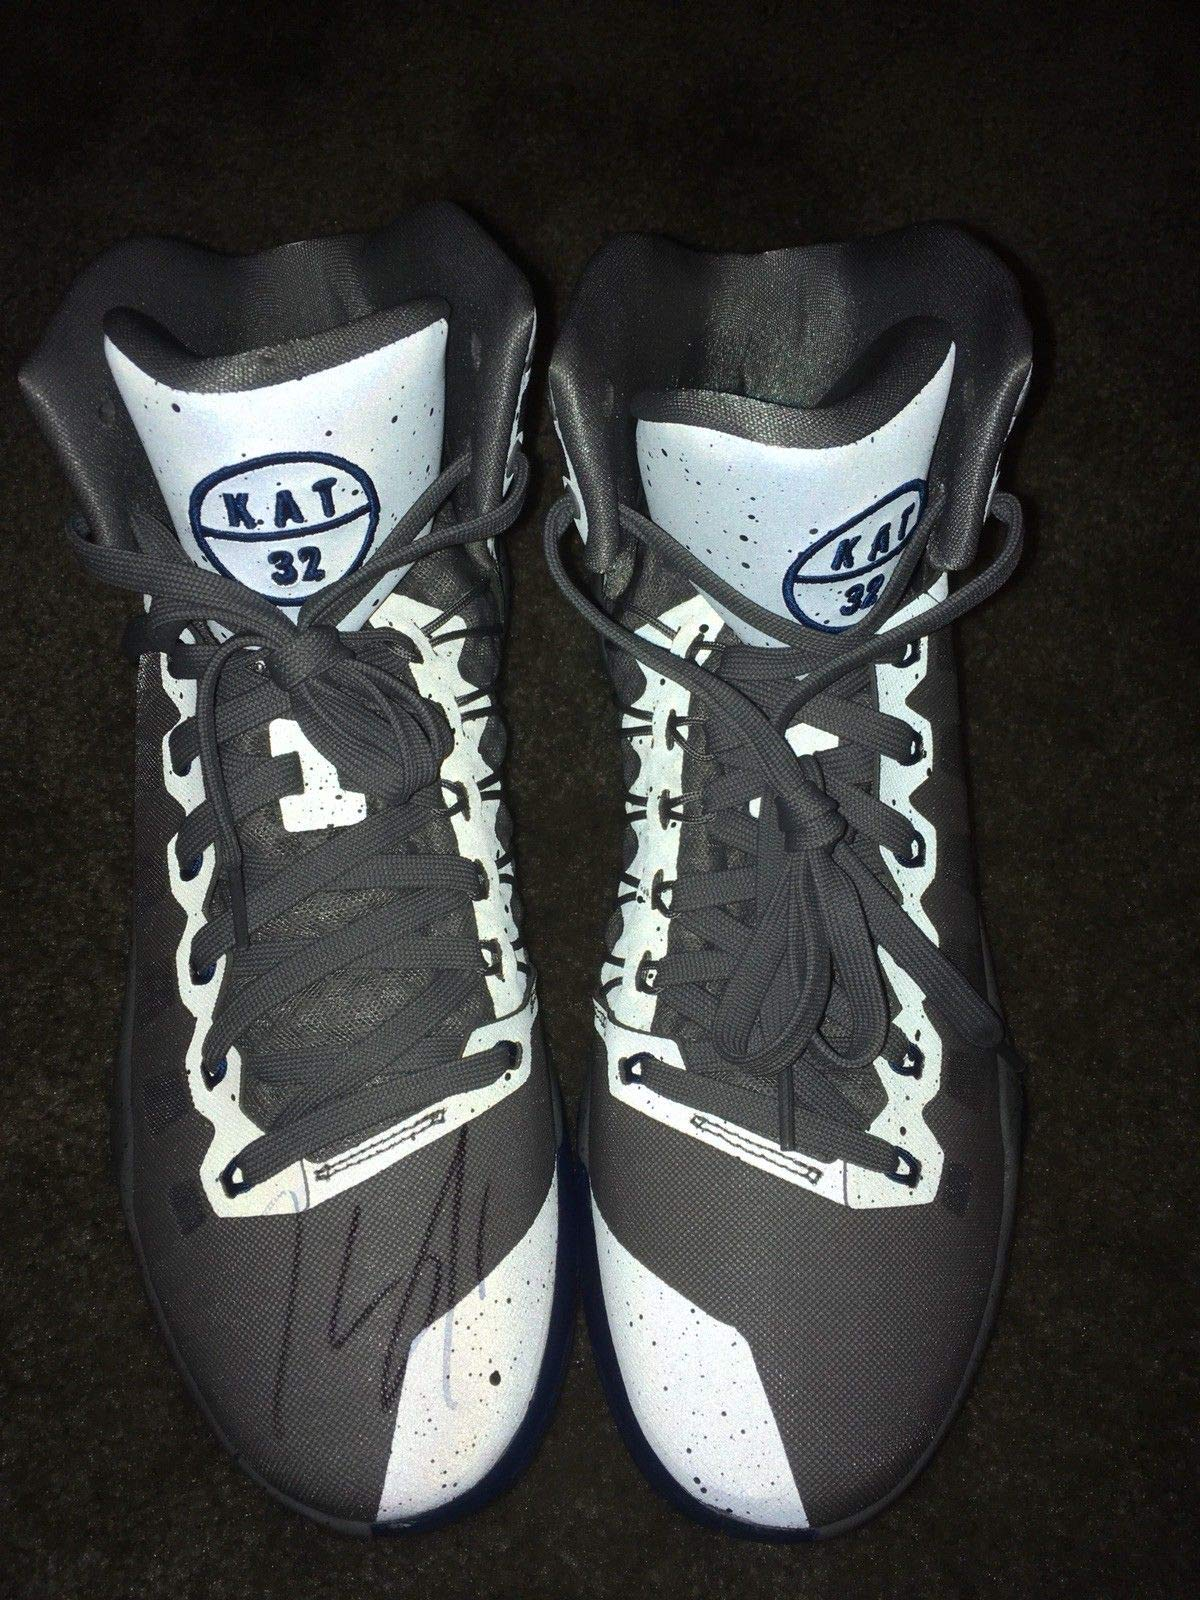 Karl Anthony Towns NBA Autographed Signed Auto Minnesota Timberwolves Nike Pe Shoes PSA/DNA